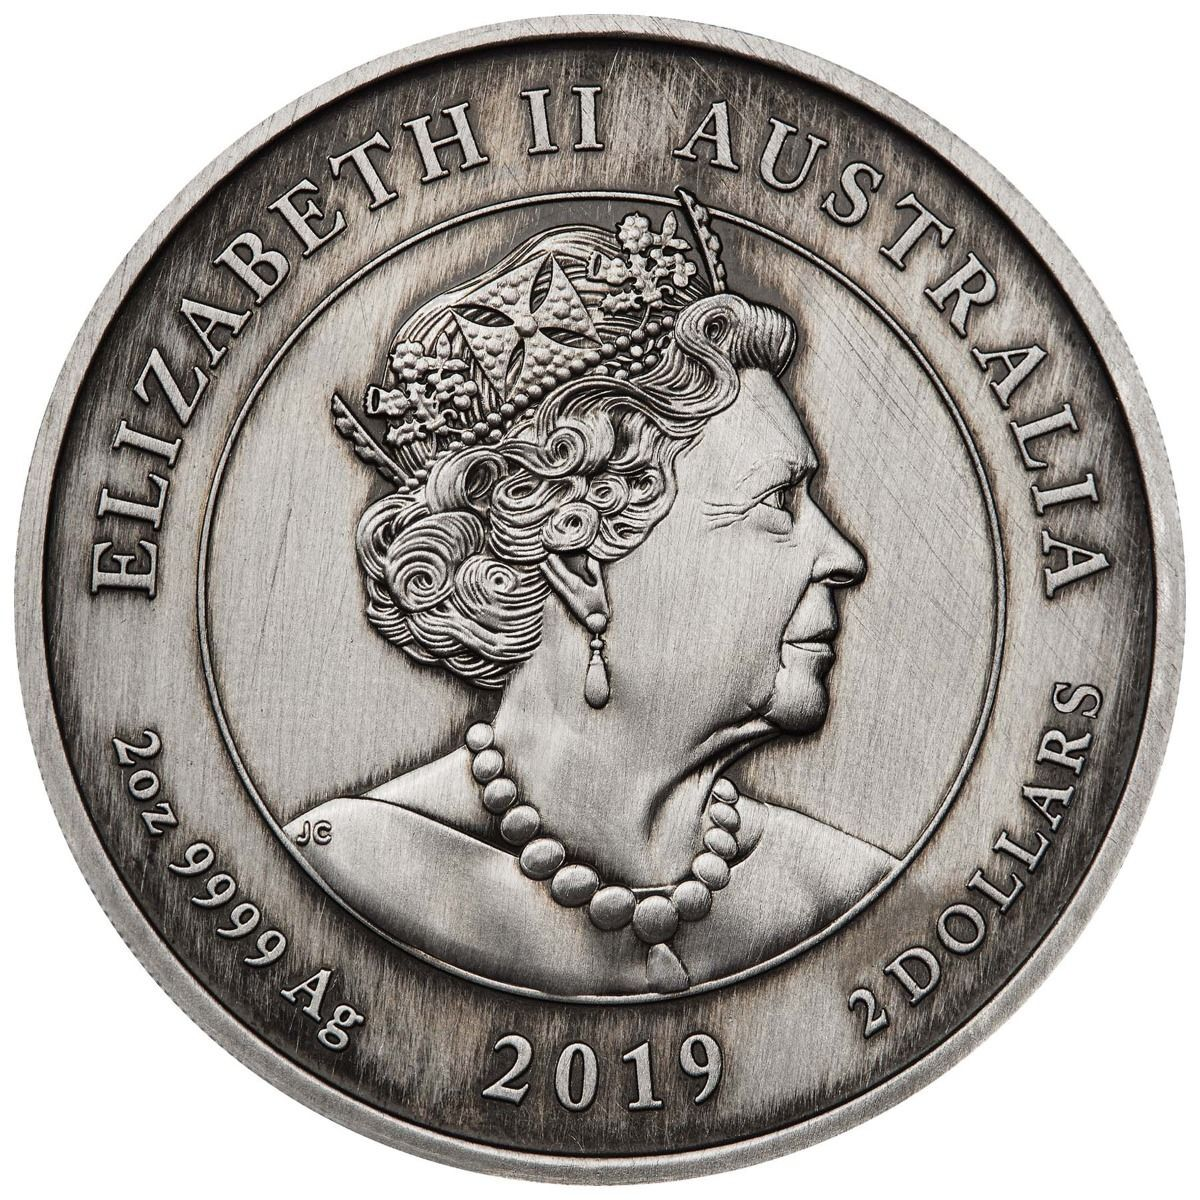 2019 $2 Queen Victoria 200th Anniversary 2oz Silver Cameo Antiqued Coin